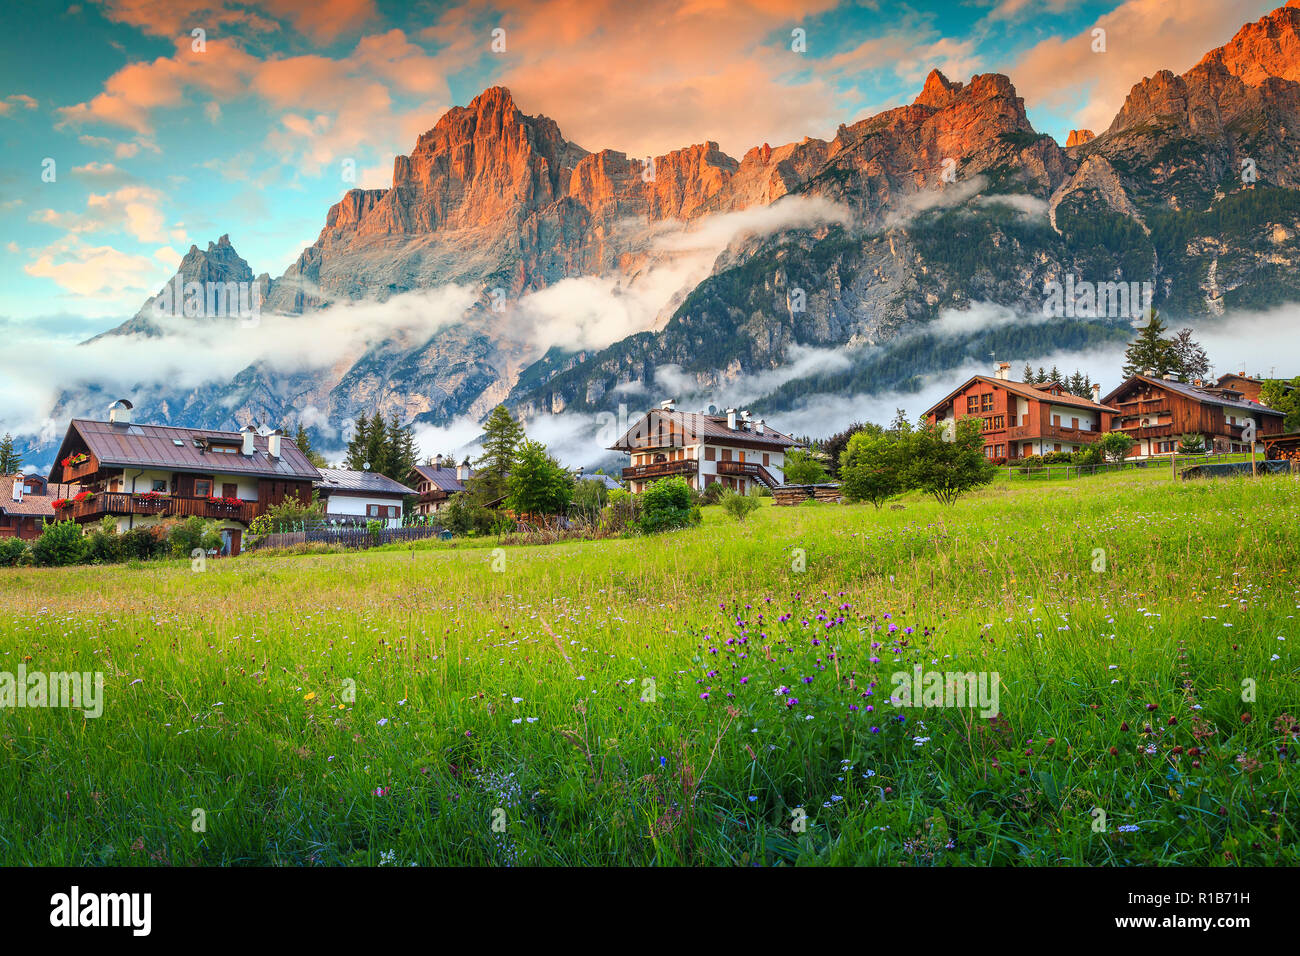 fabulous mountain resort in the dolomites, colorful spring flowers